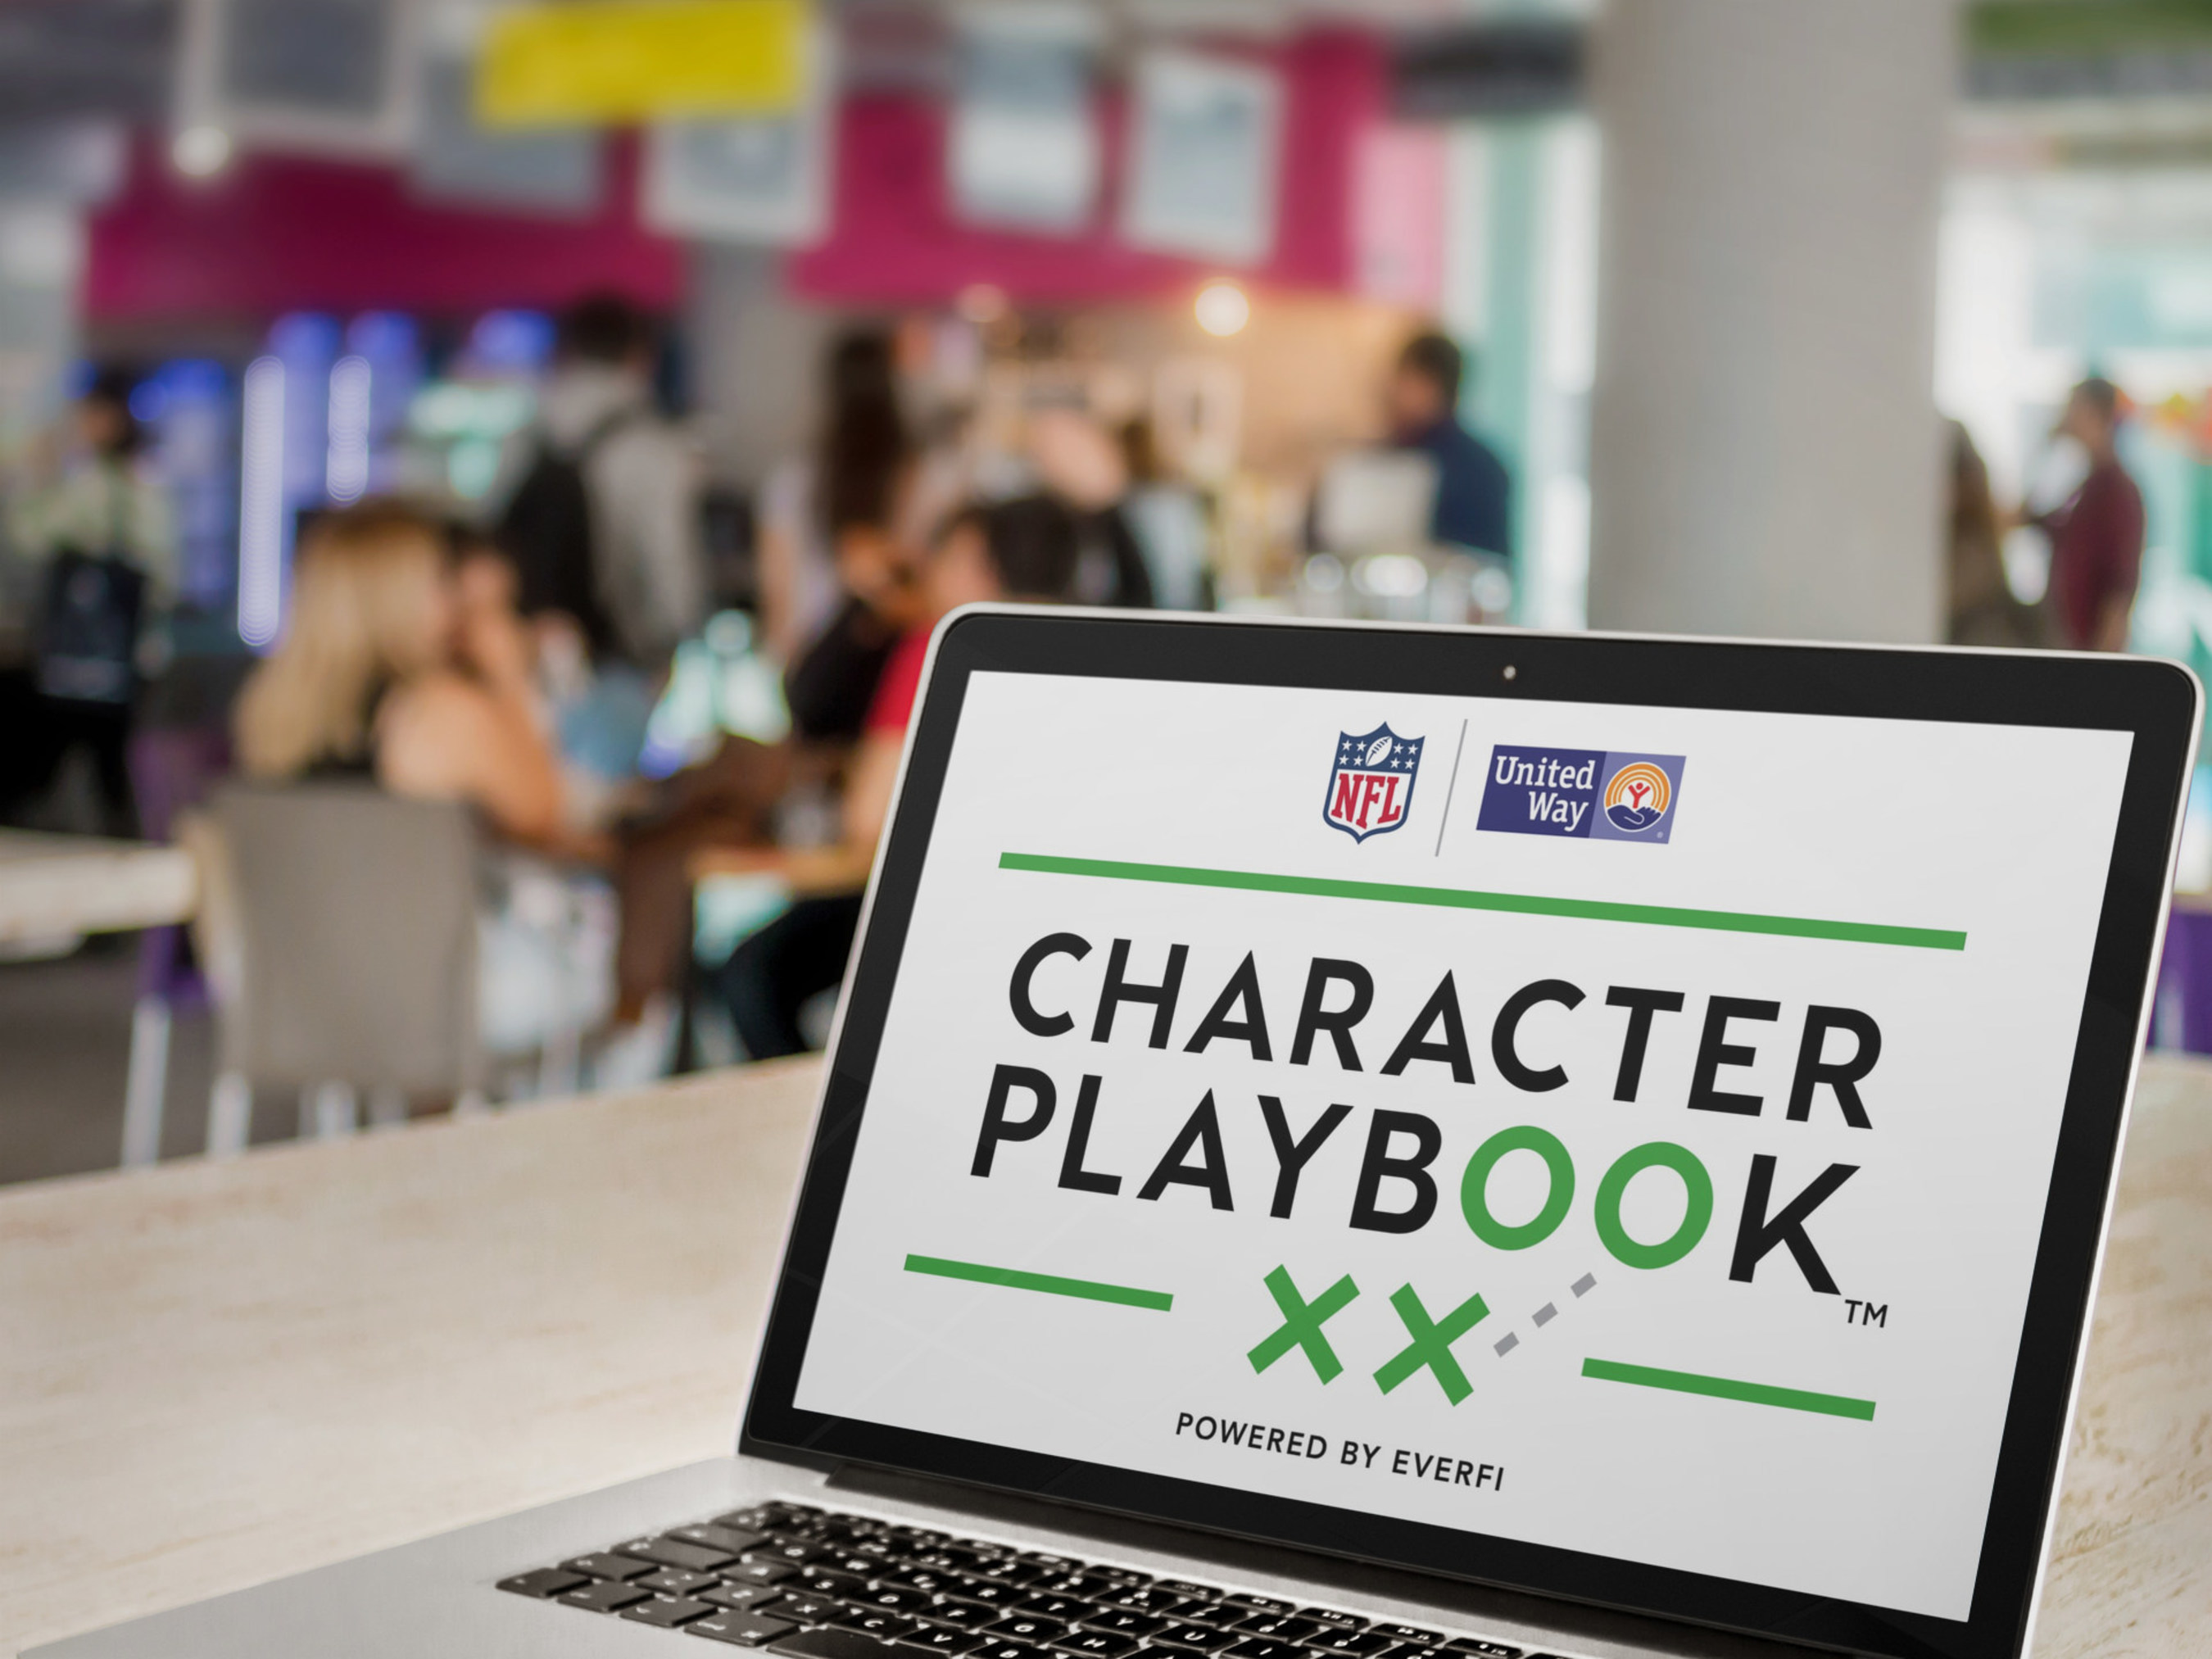 The Dallas Cowboys, United Way of Tarrant County and United Way of Metropolitan Dallas Launch Character Education Program in Schools